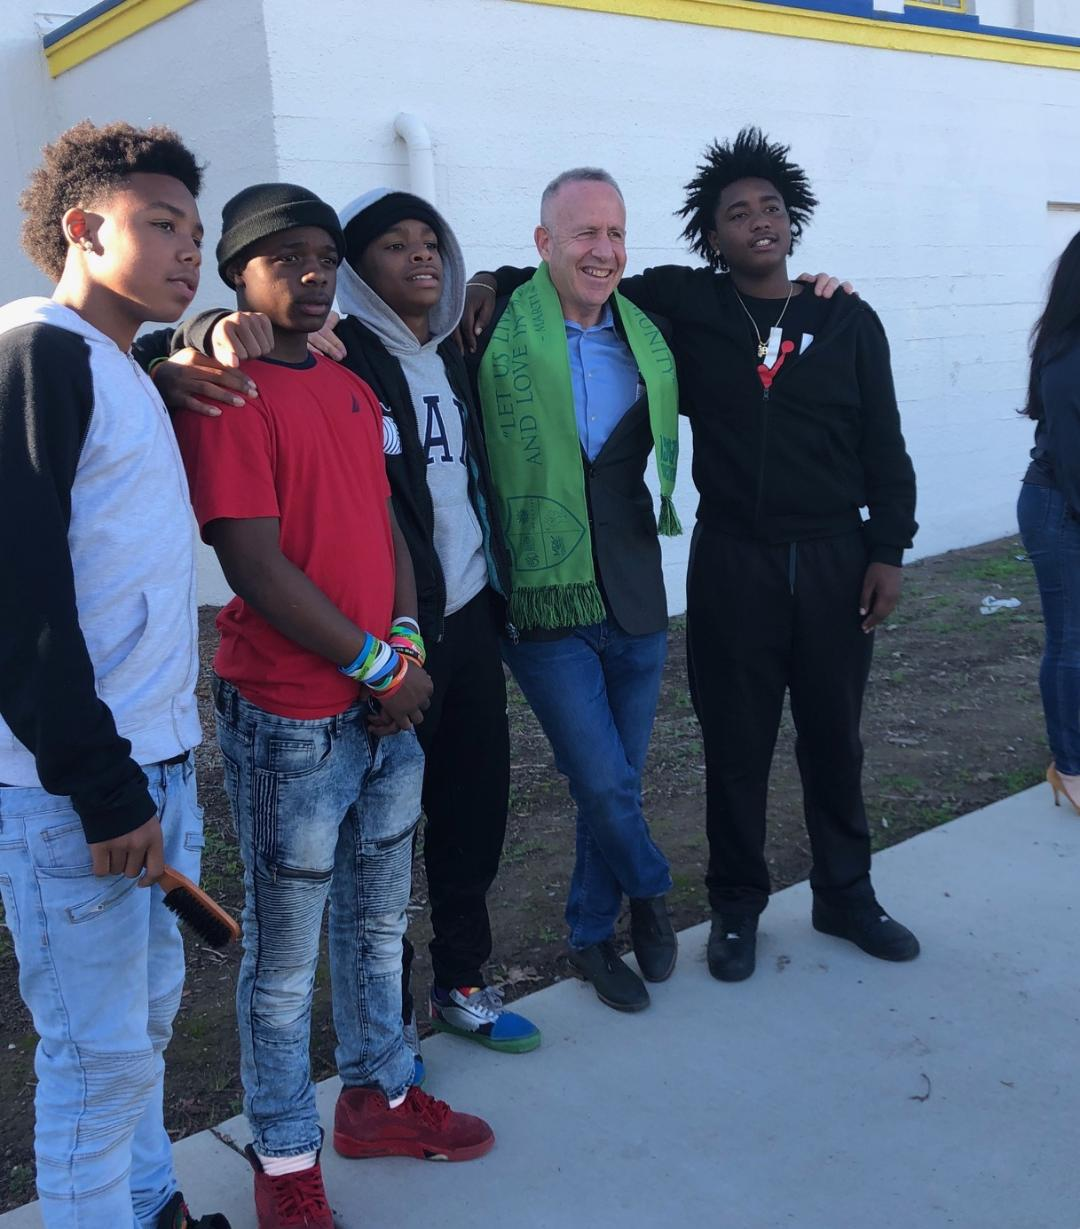 Mayor Steinberg and young men from the Brother to Brother organization after the January announcement at Grant High School that Comcast would donate $300,000 to help fund events for teens.